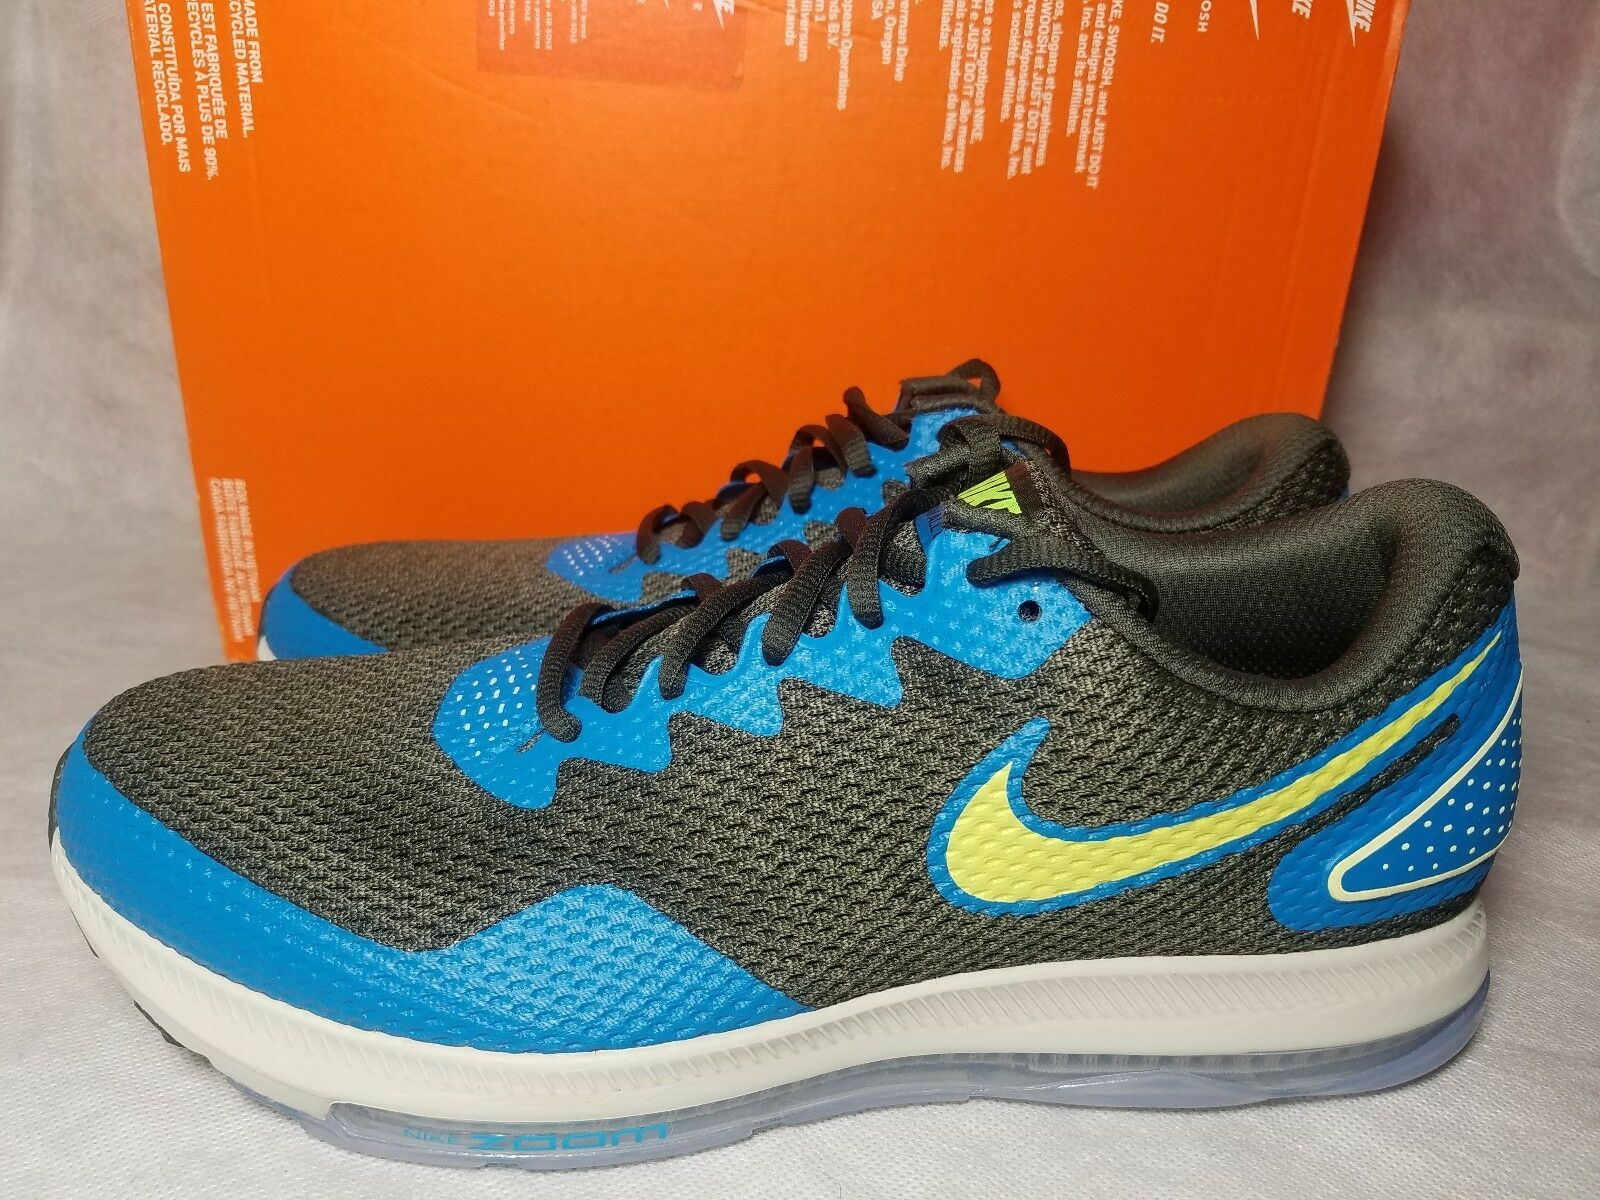 New Nike Zoom All Out Low 2 Men Size 11.5 Running Weightlifting Green Blue Shoe